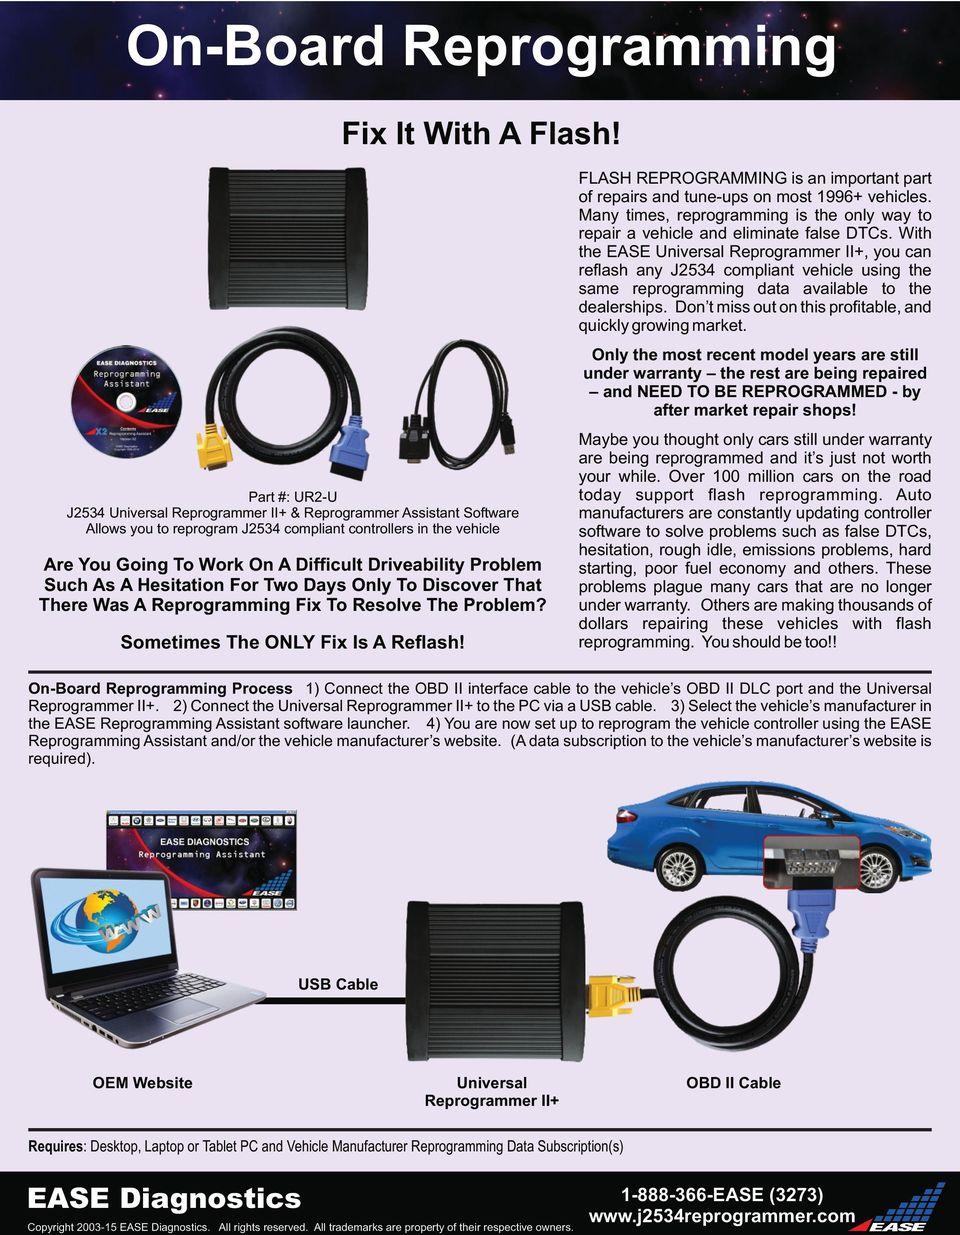 Free gm diagnostic software for laptop